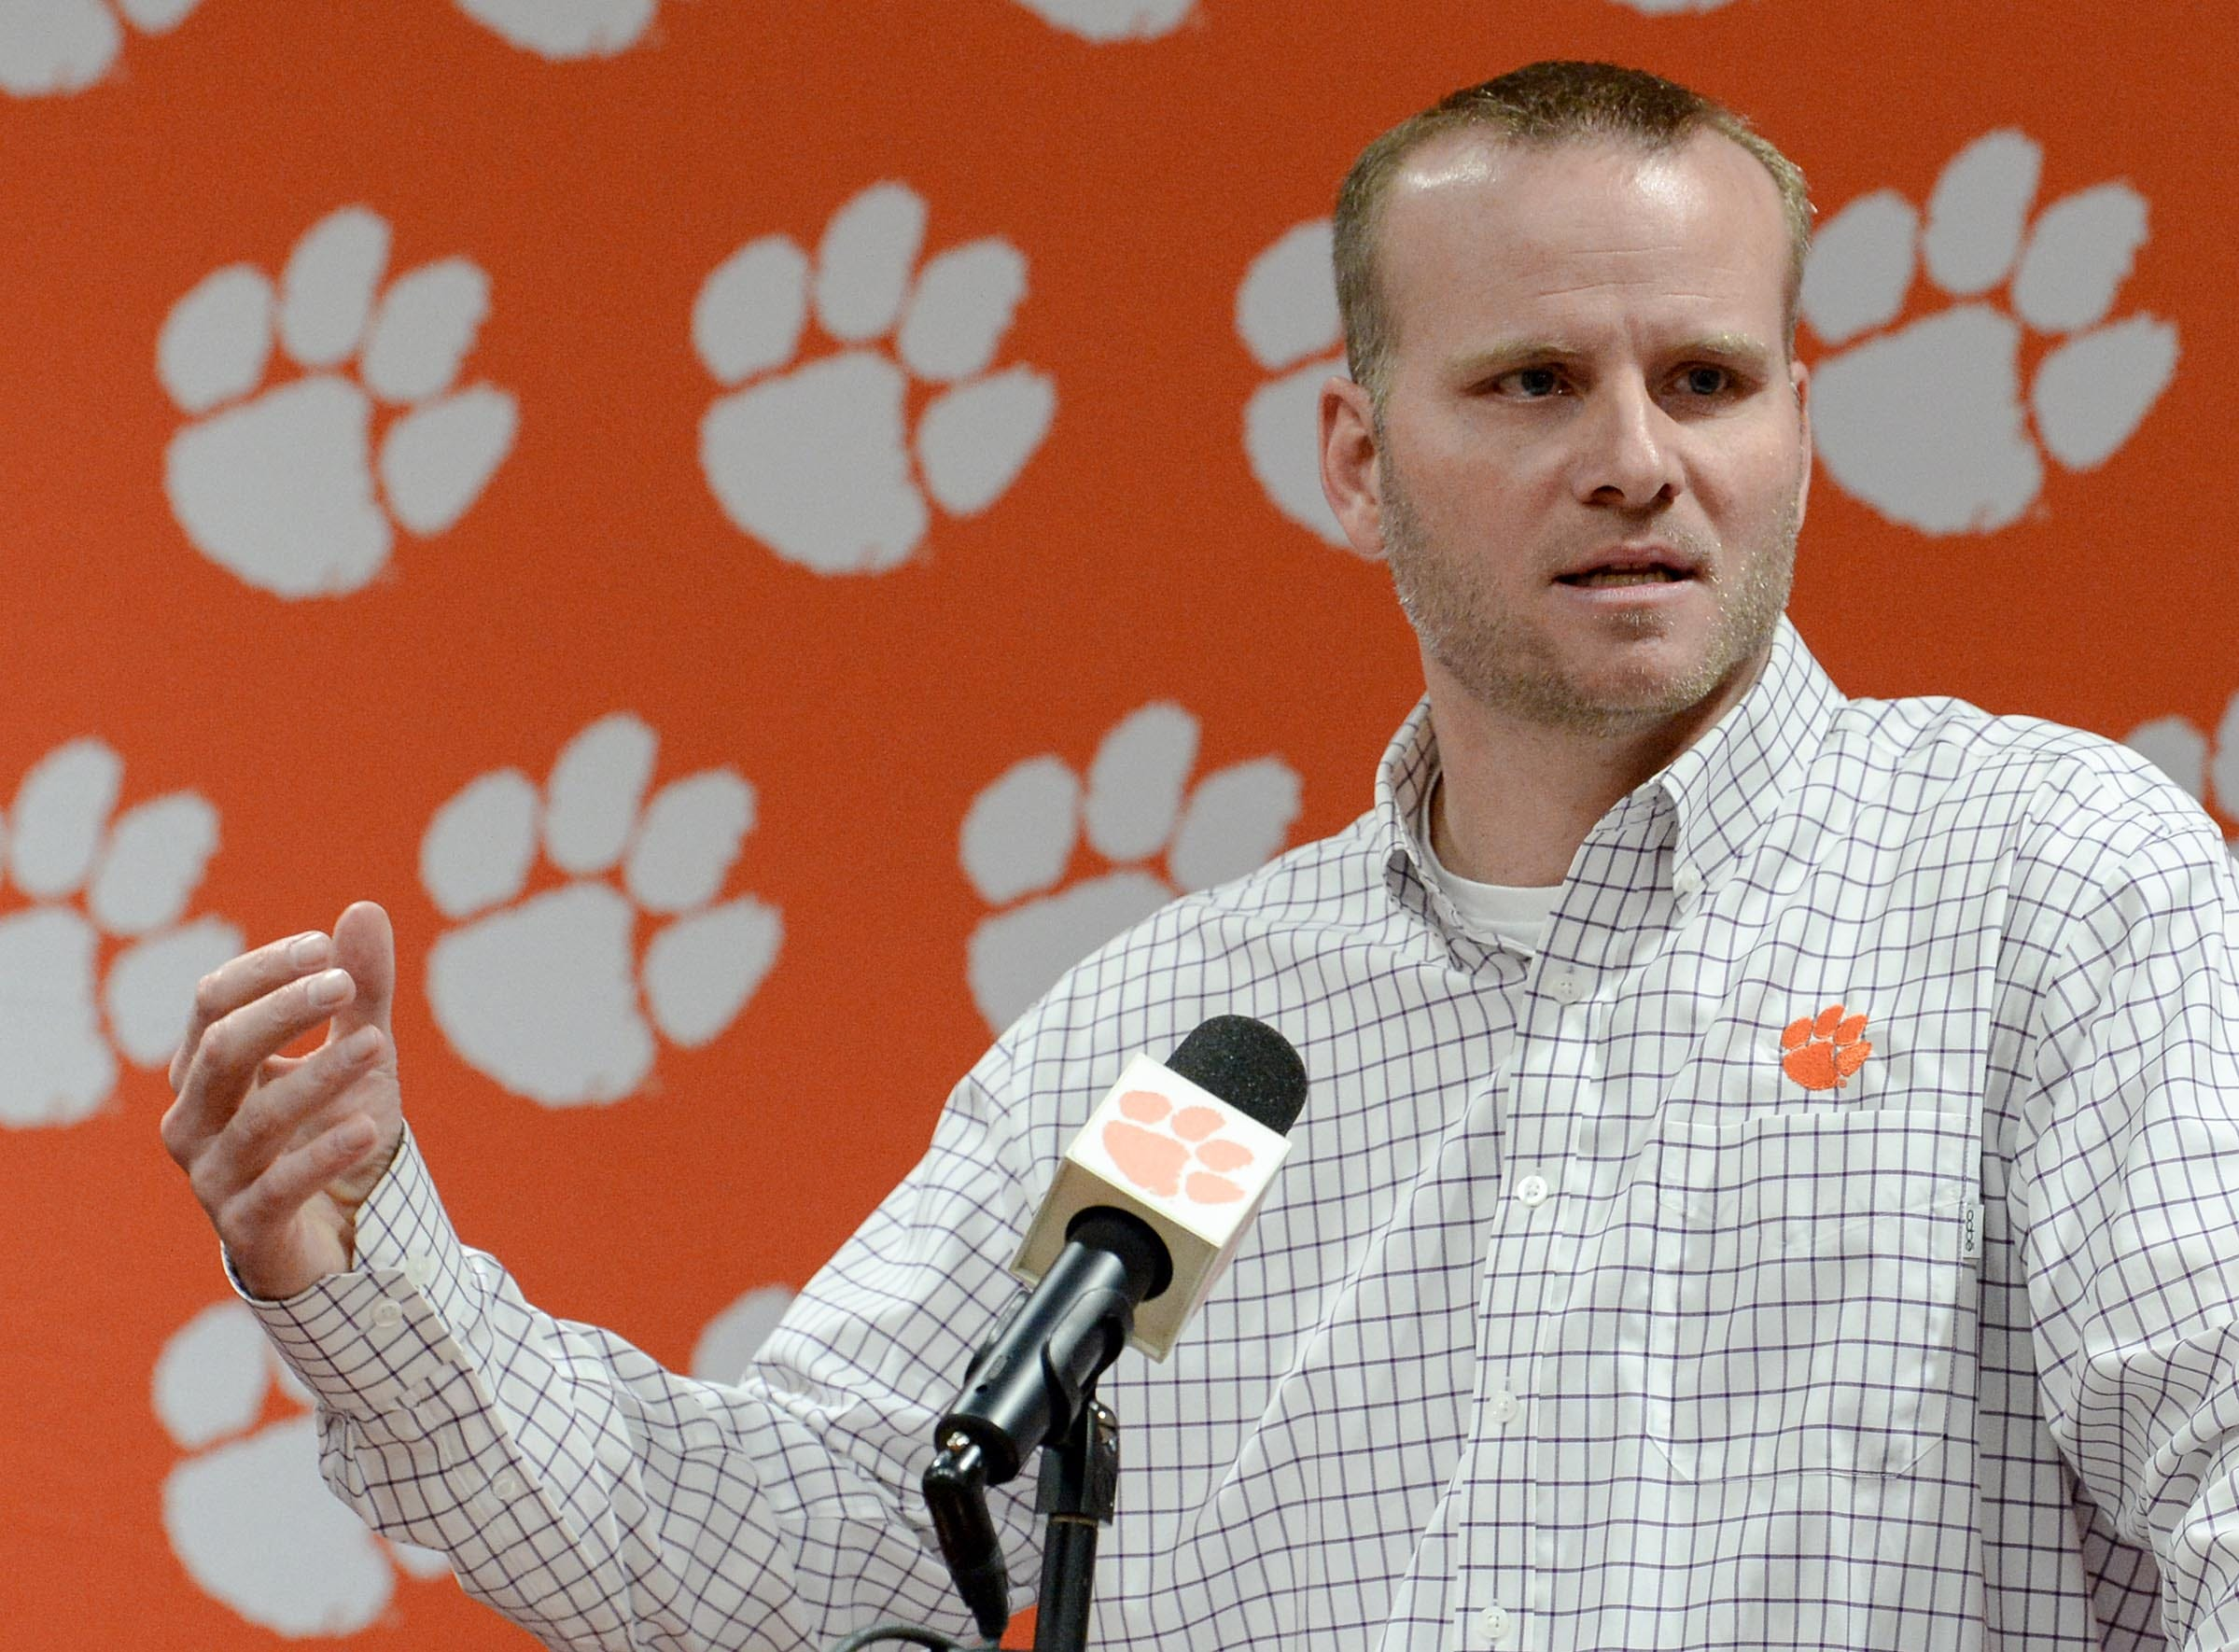 Clemson football quarterback coach Brandon Streeter speaks during National Letter of Intent signing day press conference in Clemson Wednesday, February 6, 2019.